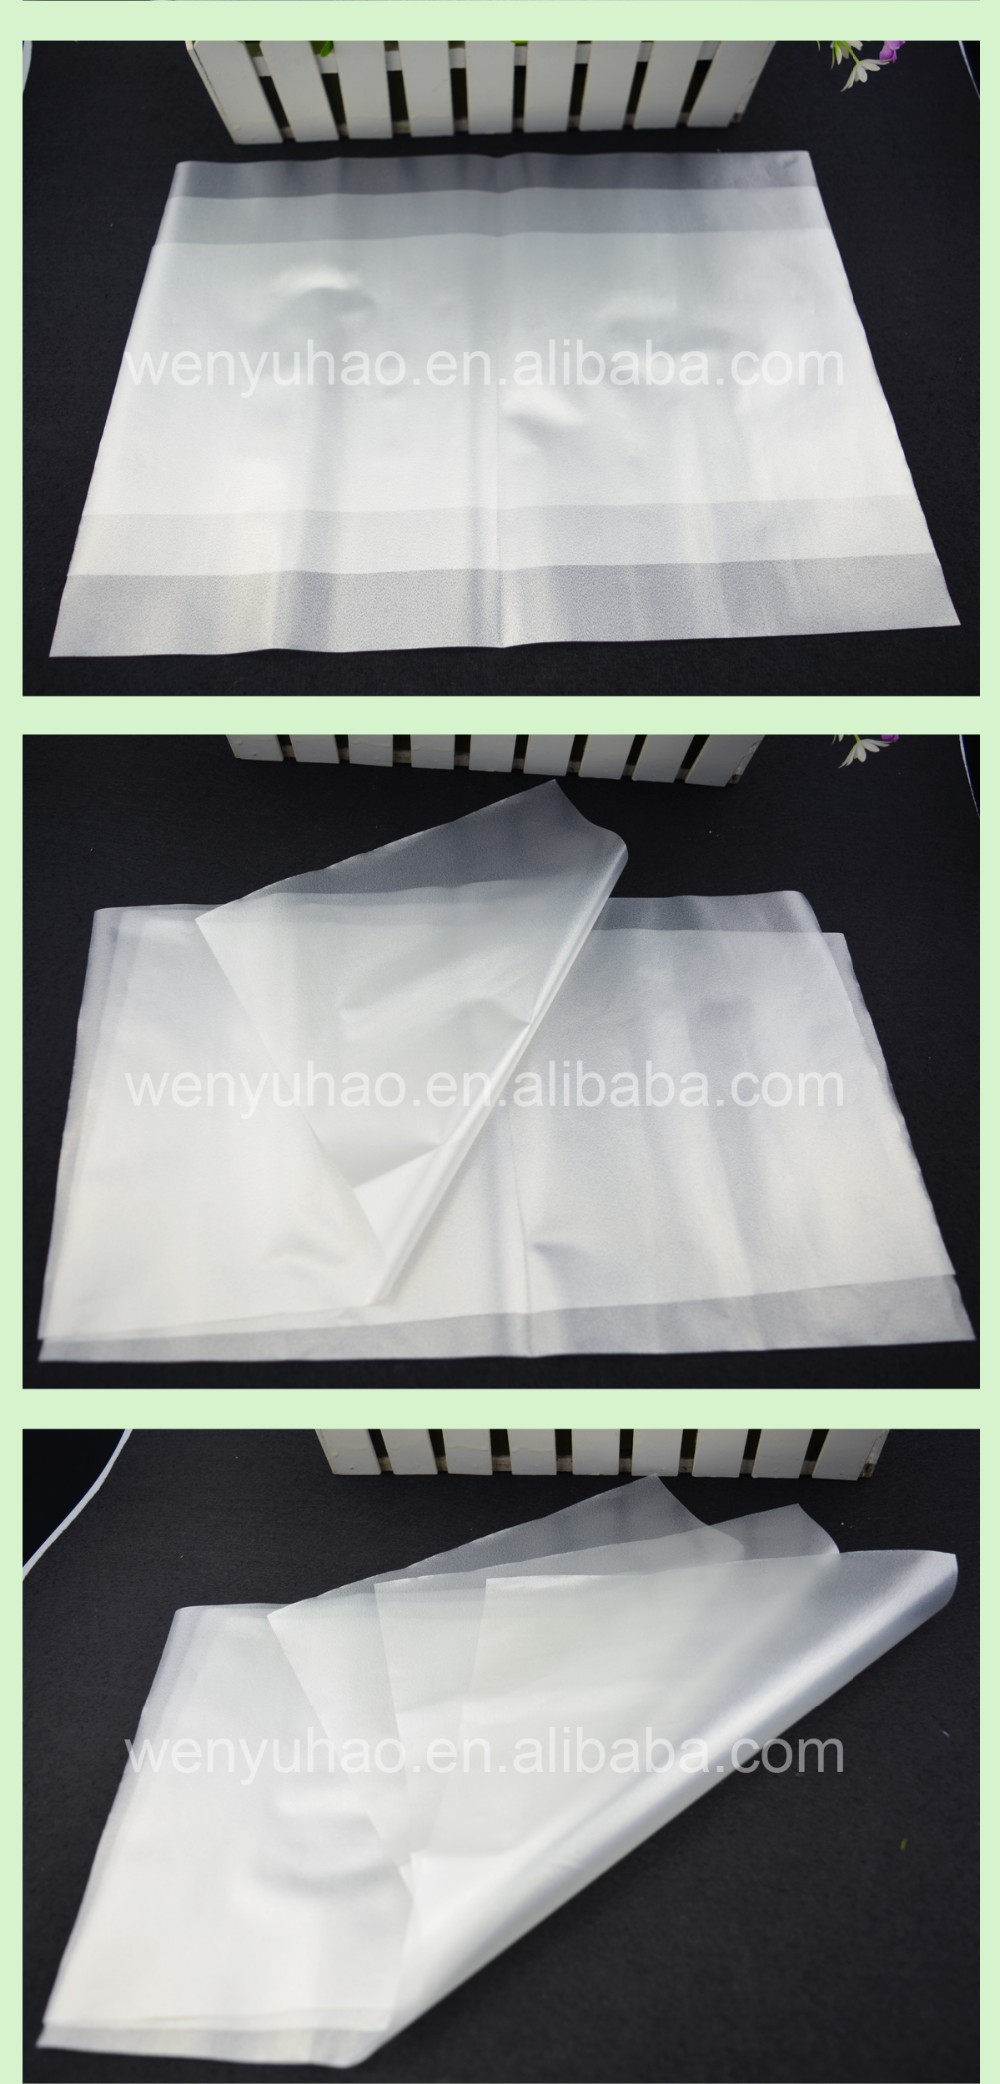 Protection feature and pe material plastic film, high quality pe protective film/protective tape